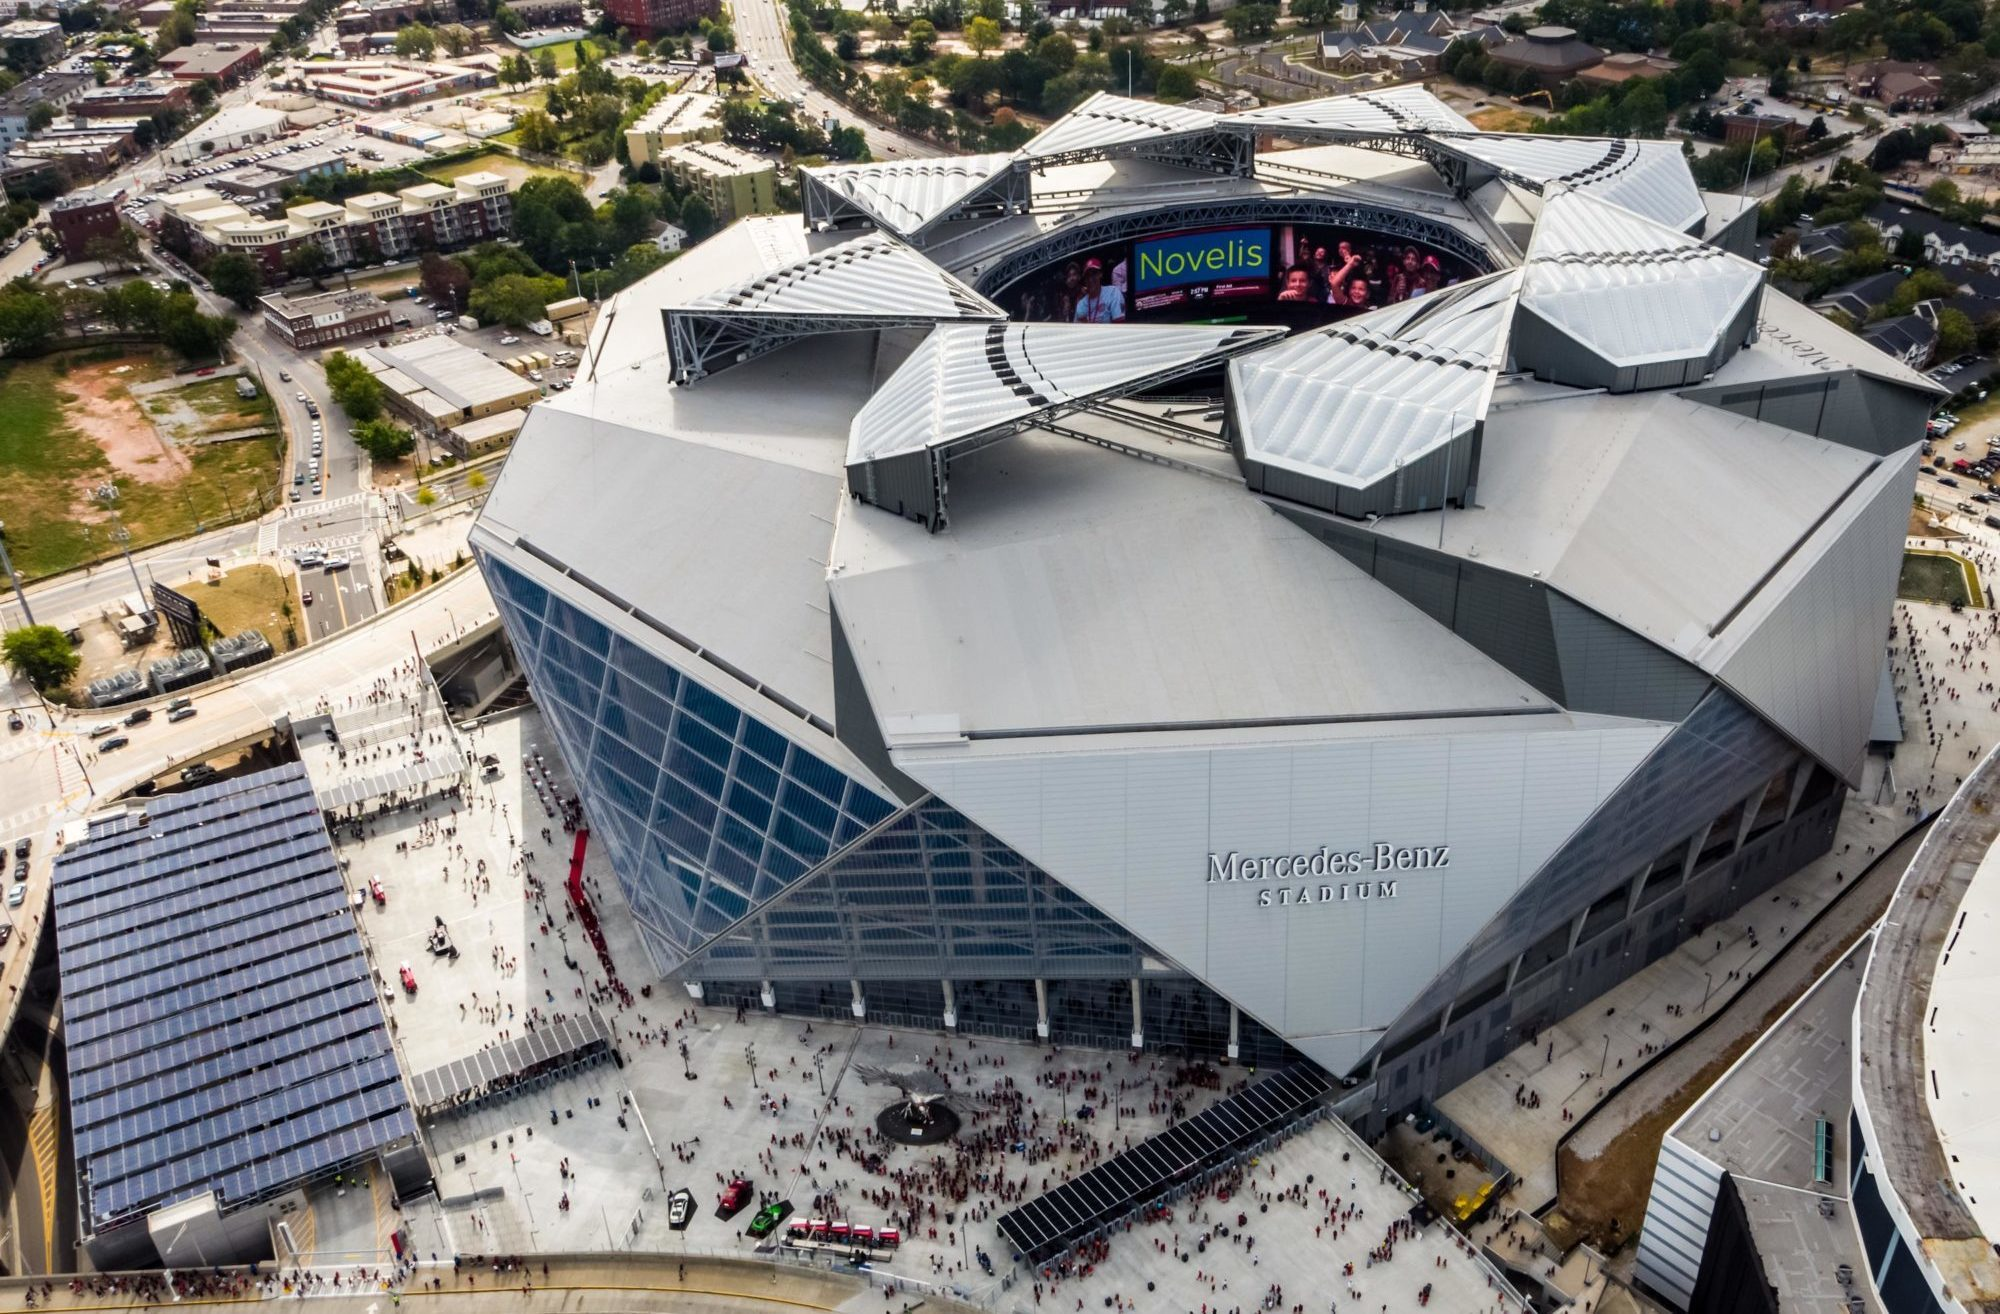 21a851fbe22 Charitybuzz: 4 Tickets to Super Bowl LIII & NFL On Location ...